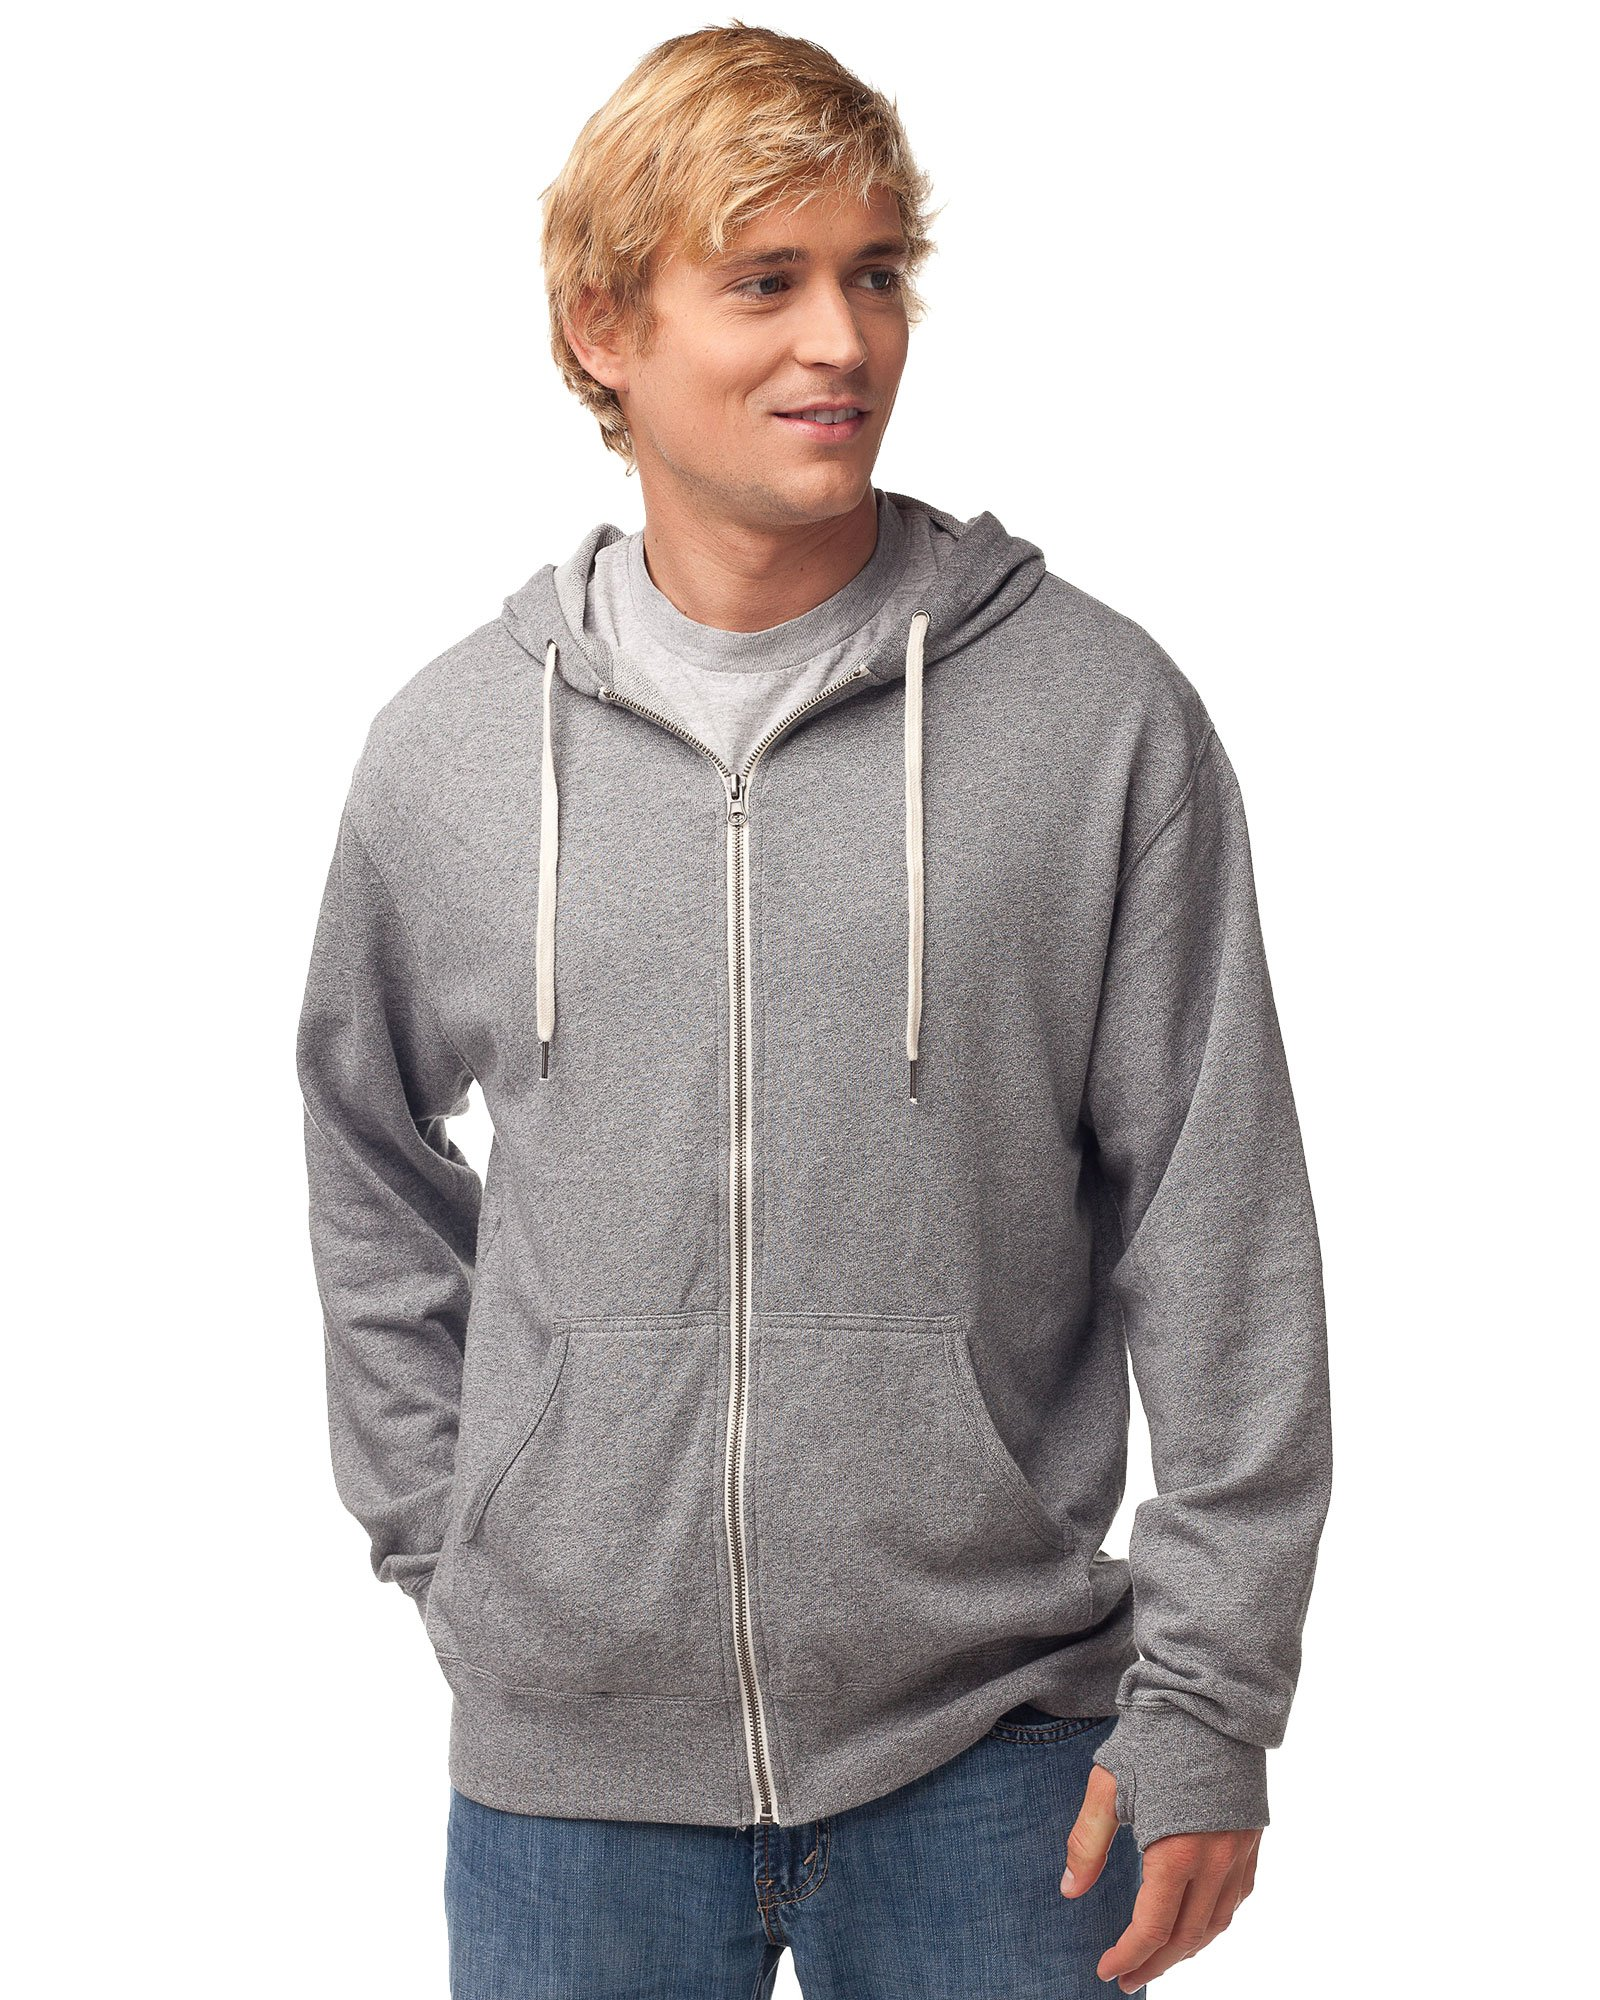 Global Blank Slim Fit French Terry Lightweight Zip Up Hoodie for Men and Women XS Salt Pepper